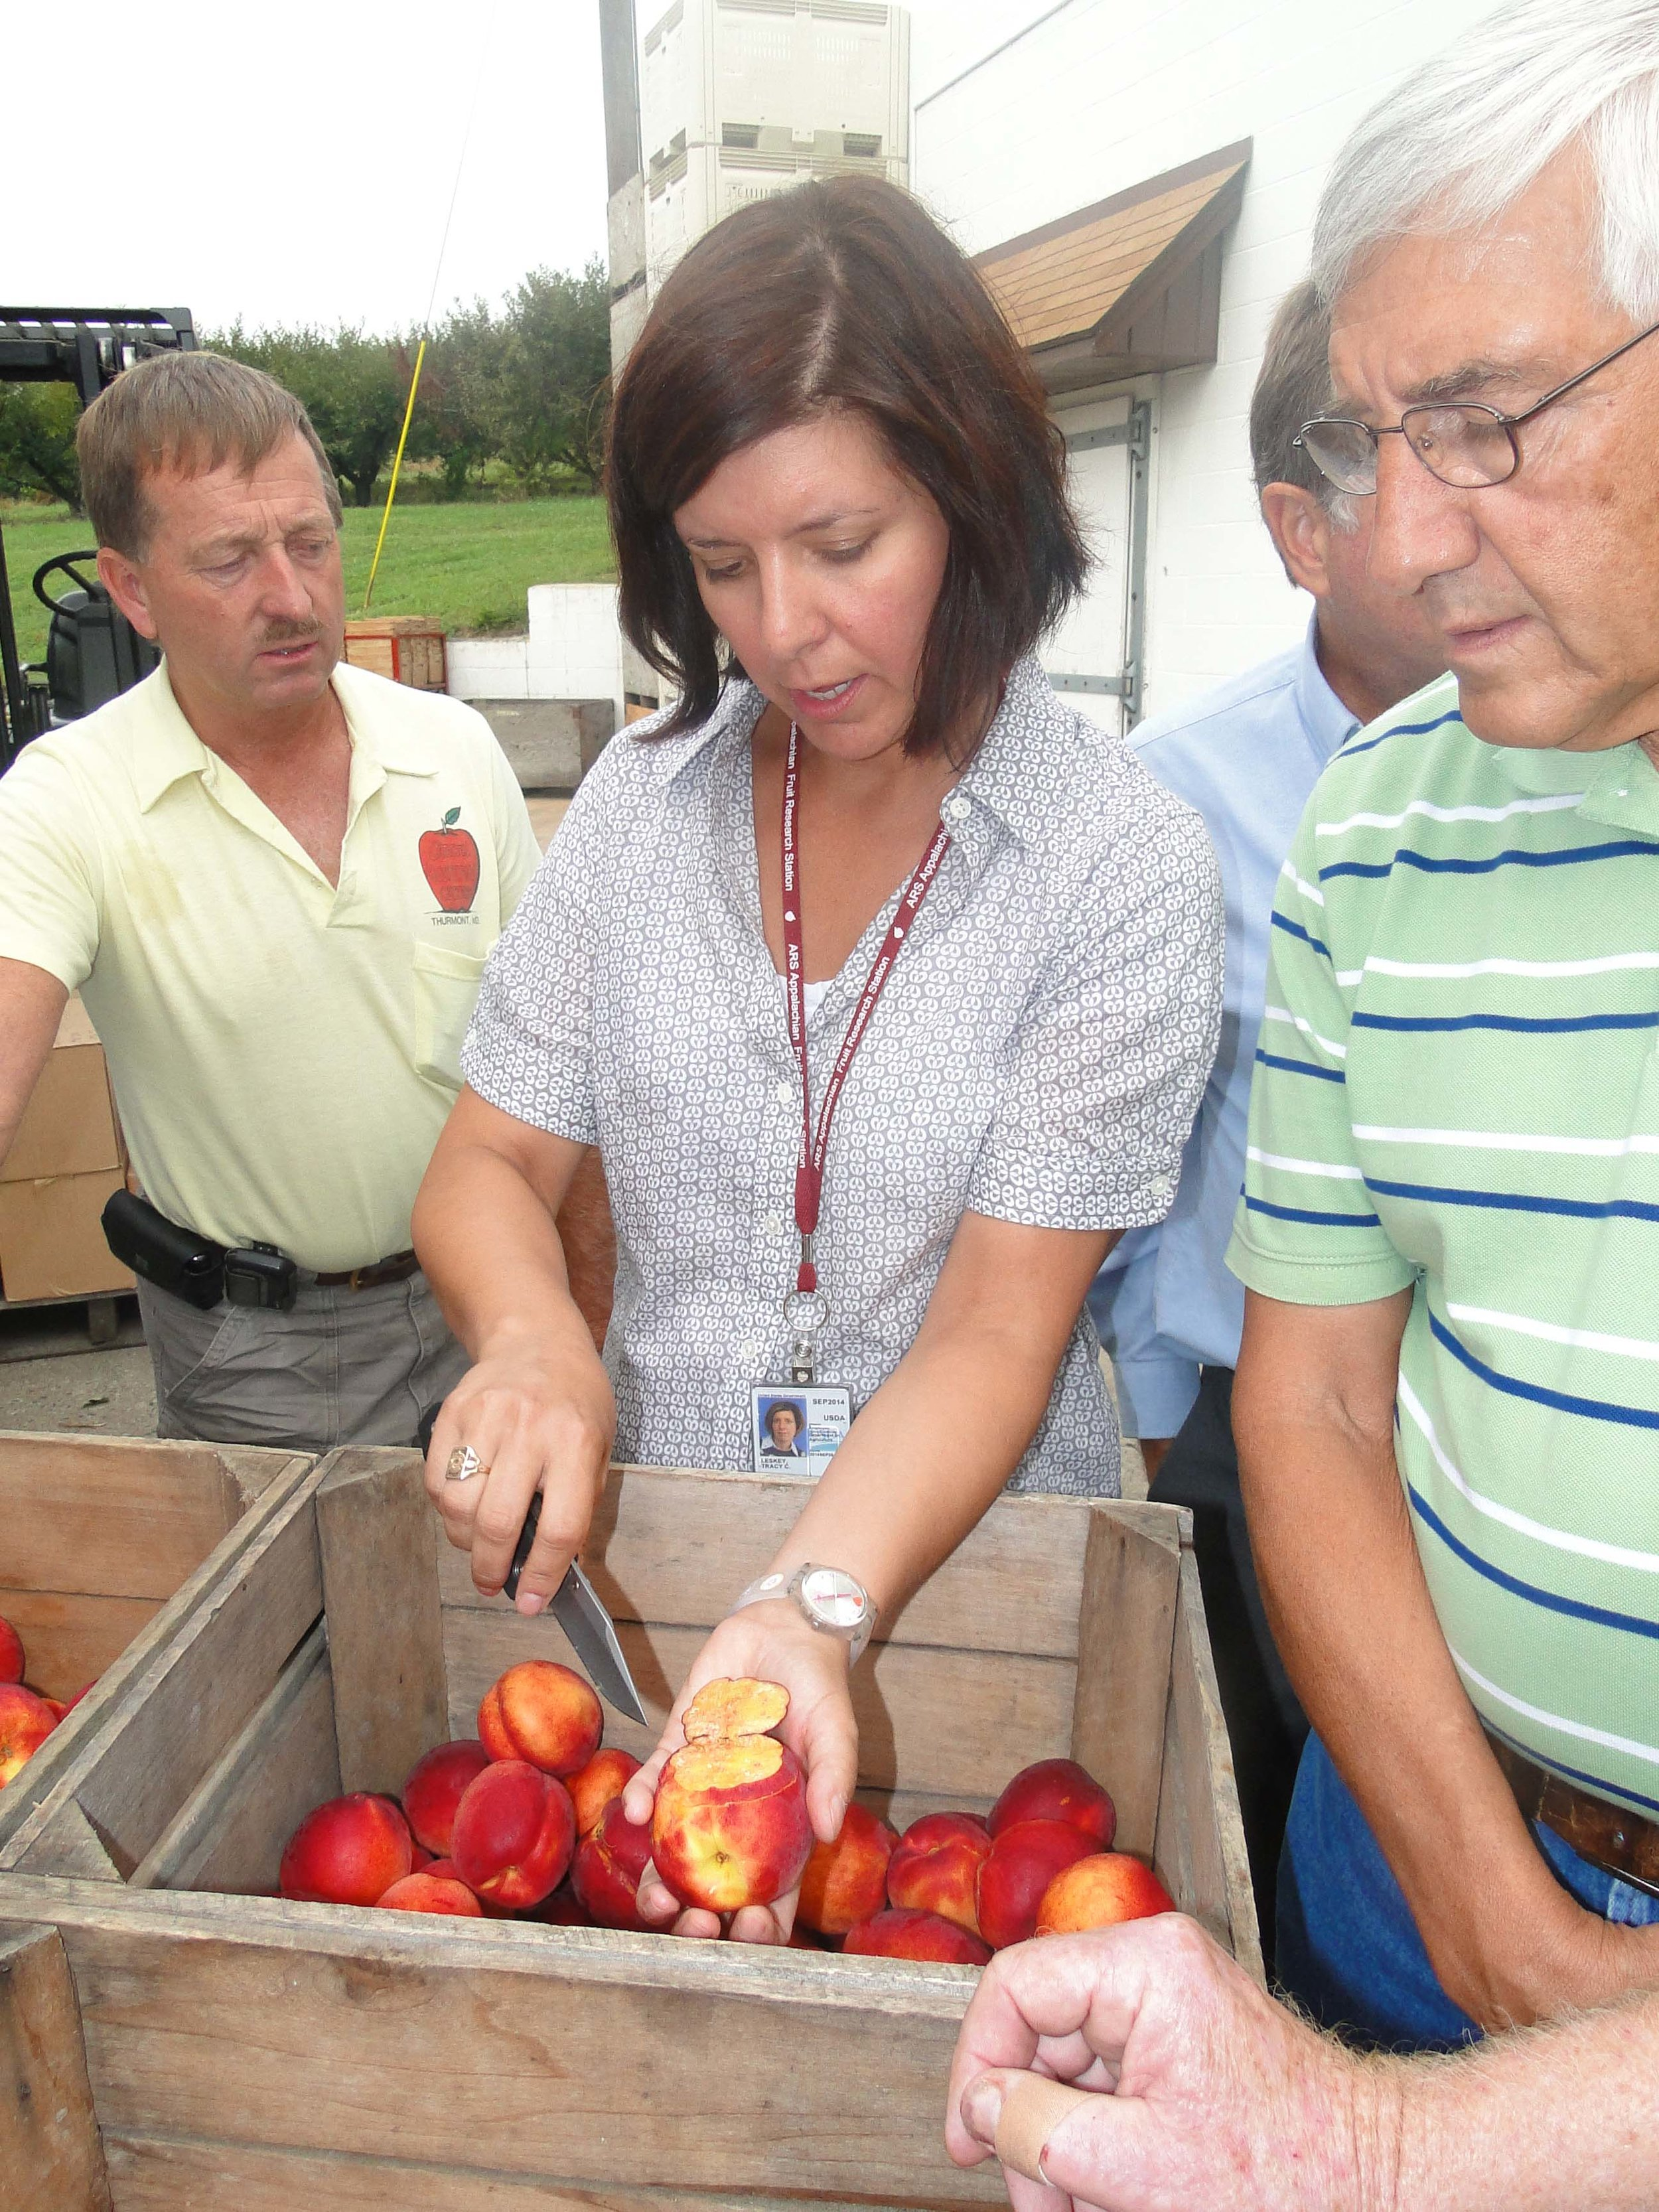 Tray at a farm showing damage to 'Fantasia' nectarines by brown marmorated stink bugs.